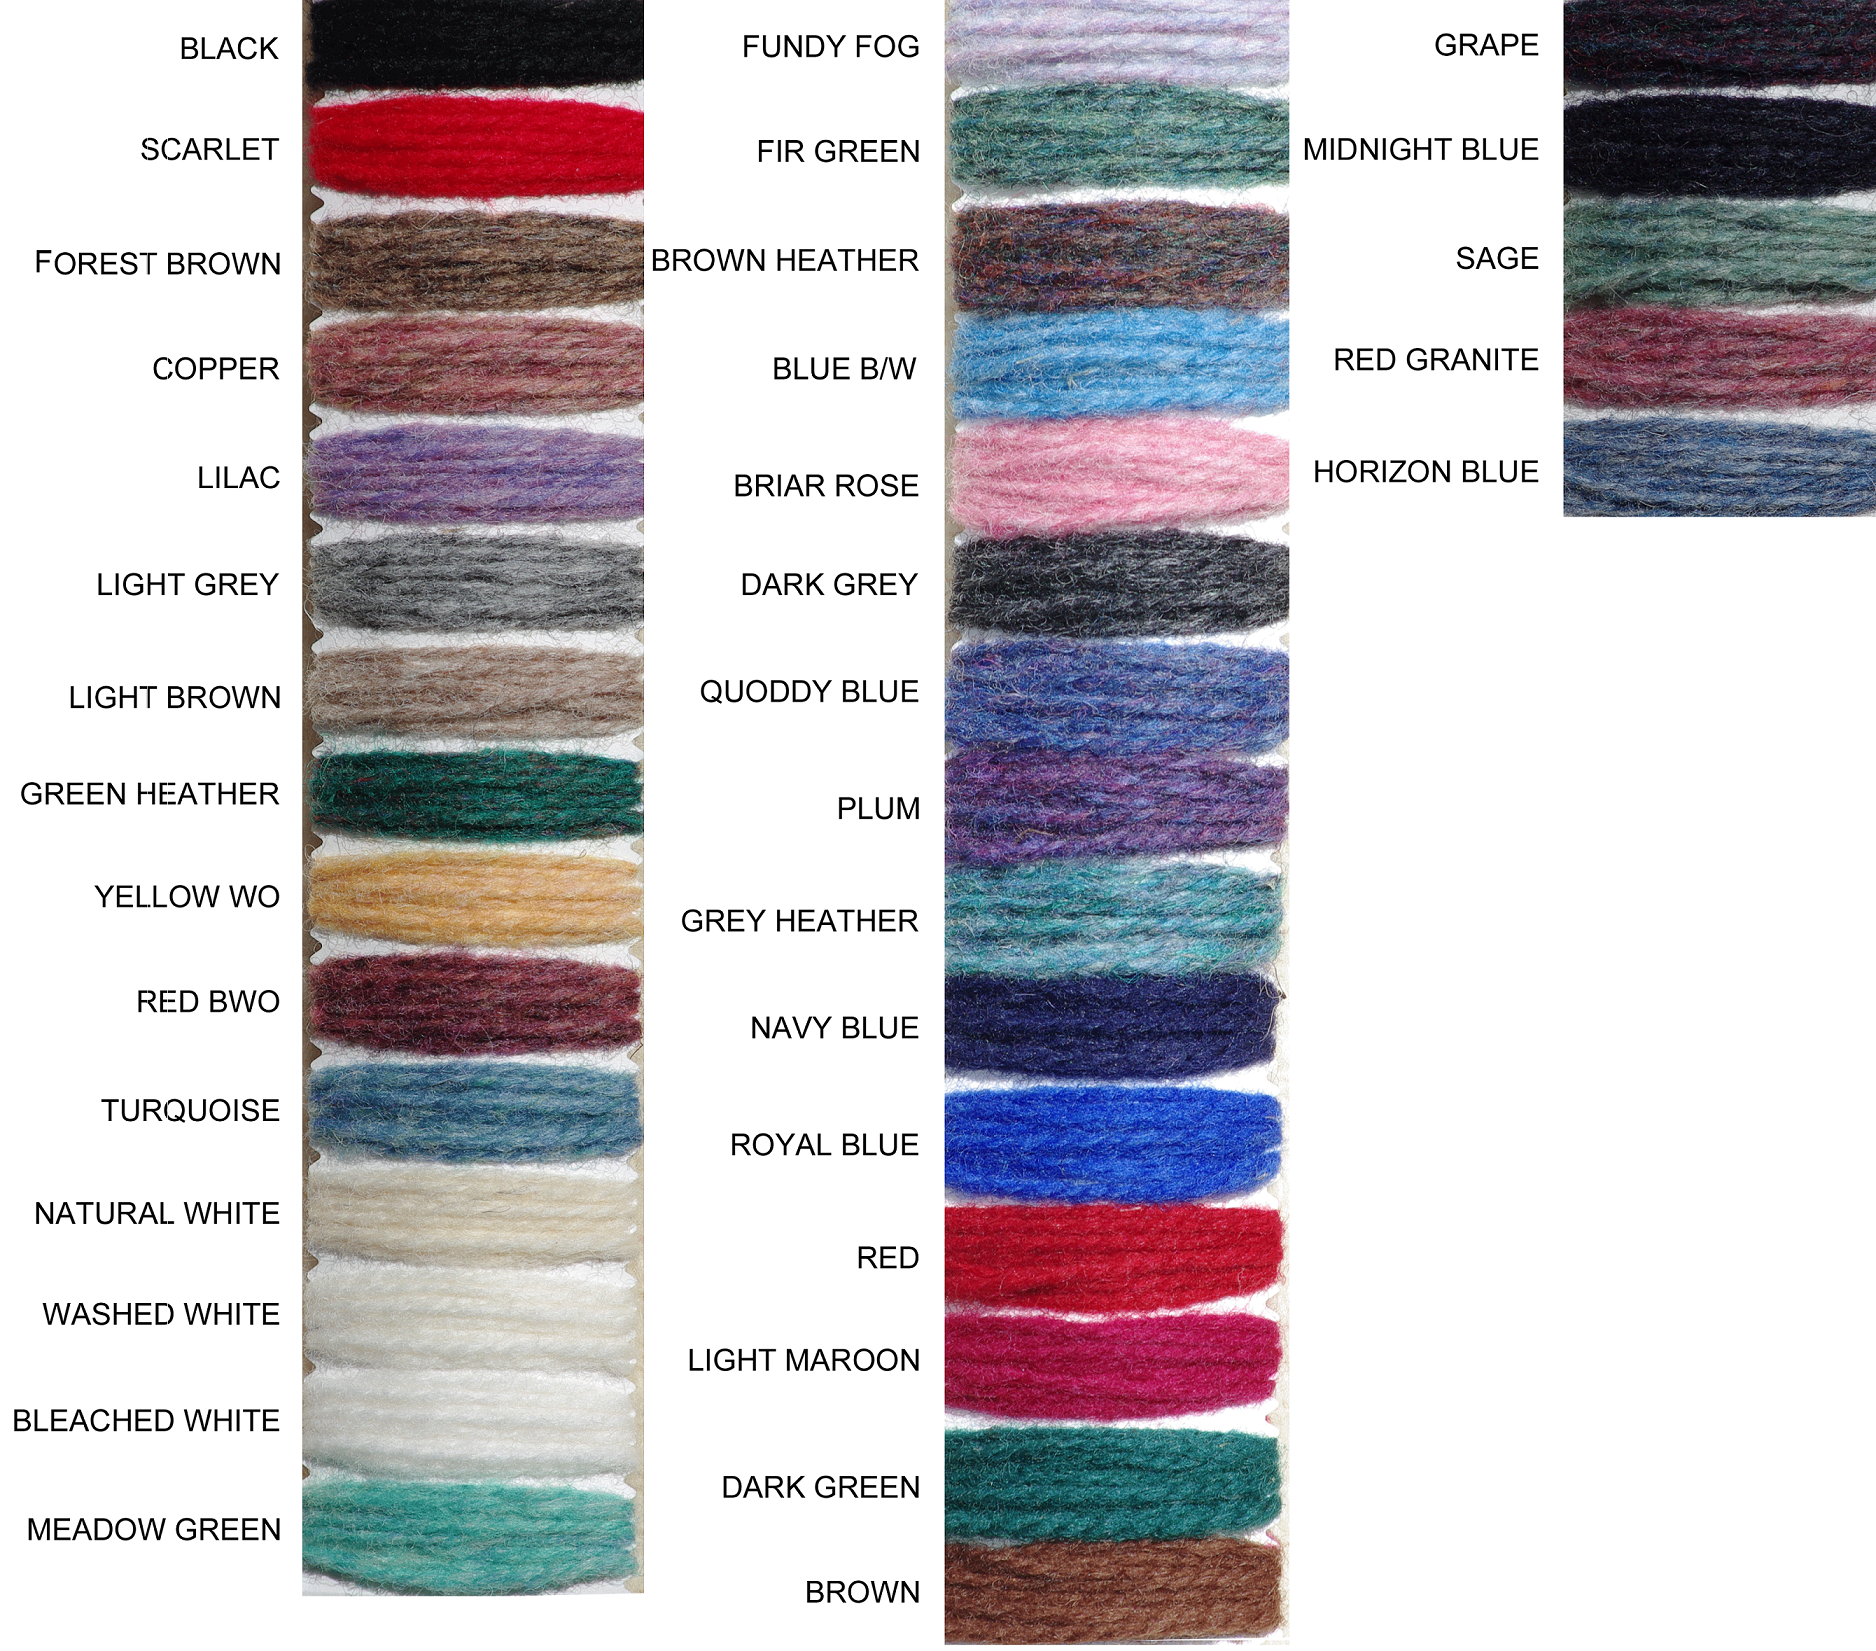 Wool knitting yarns wool knitting yarn from briggs little patterns available nvjuhfo Choice Image